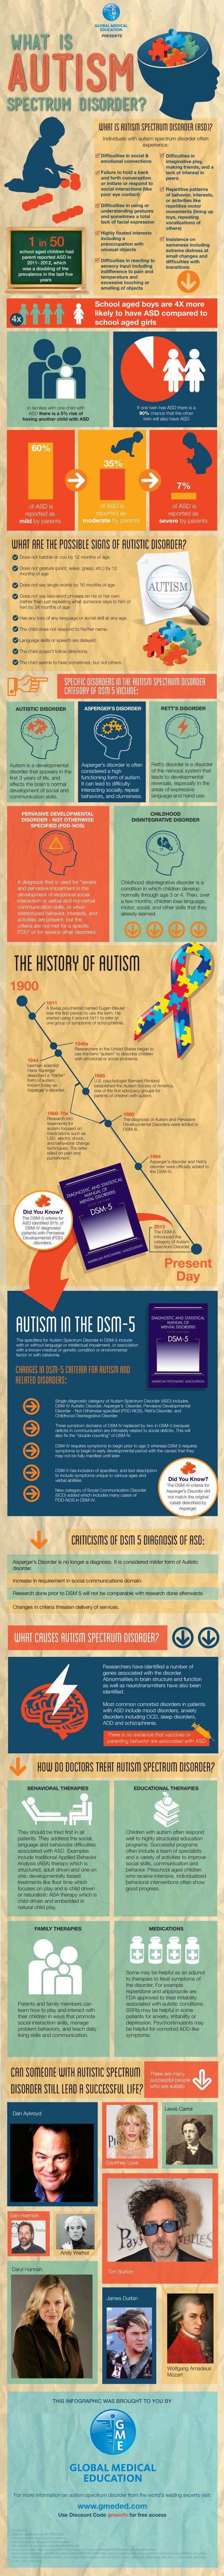 """What is Autism Spectrum Disorder (ASD)? It is rather ridiculous to assume the adults pictured actually have autism. And NO the vaccine connections has NOT been ruled out. In fact the studies that are cited to """"prove"""" vaccines are not linked to autism have been discredited. Link here: http://www.ageofautism.com/2009/04/fourteen-studies-only-if-you-never-read-them.html"""